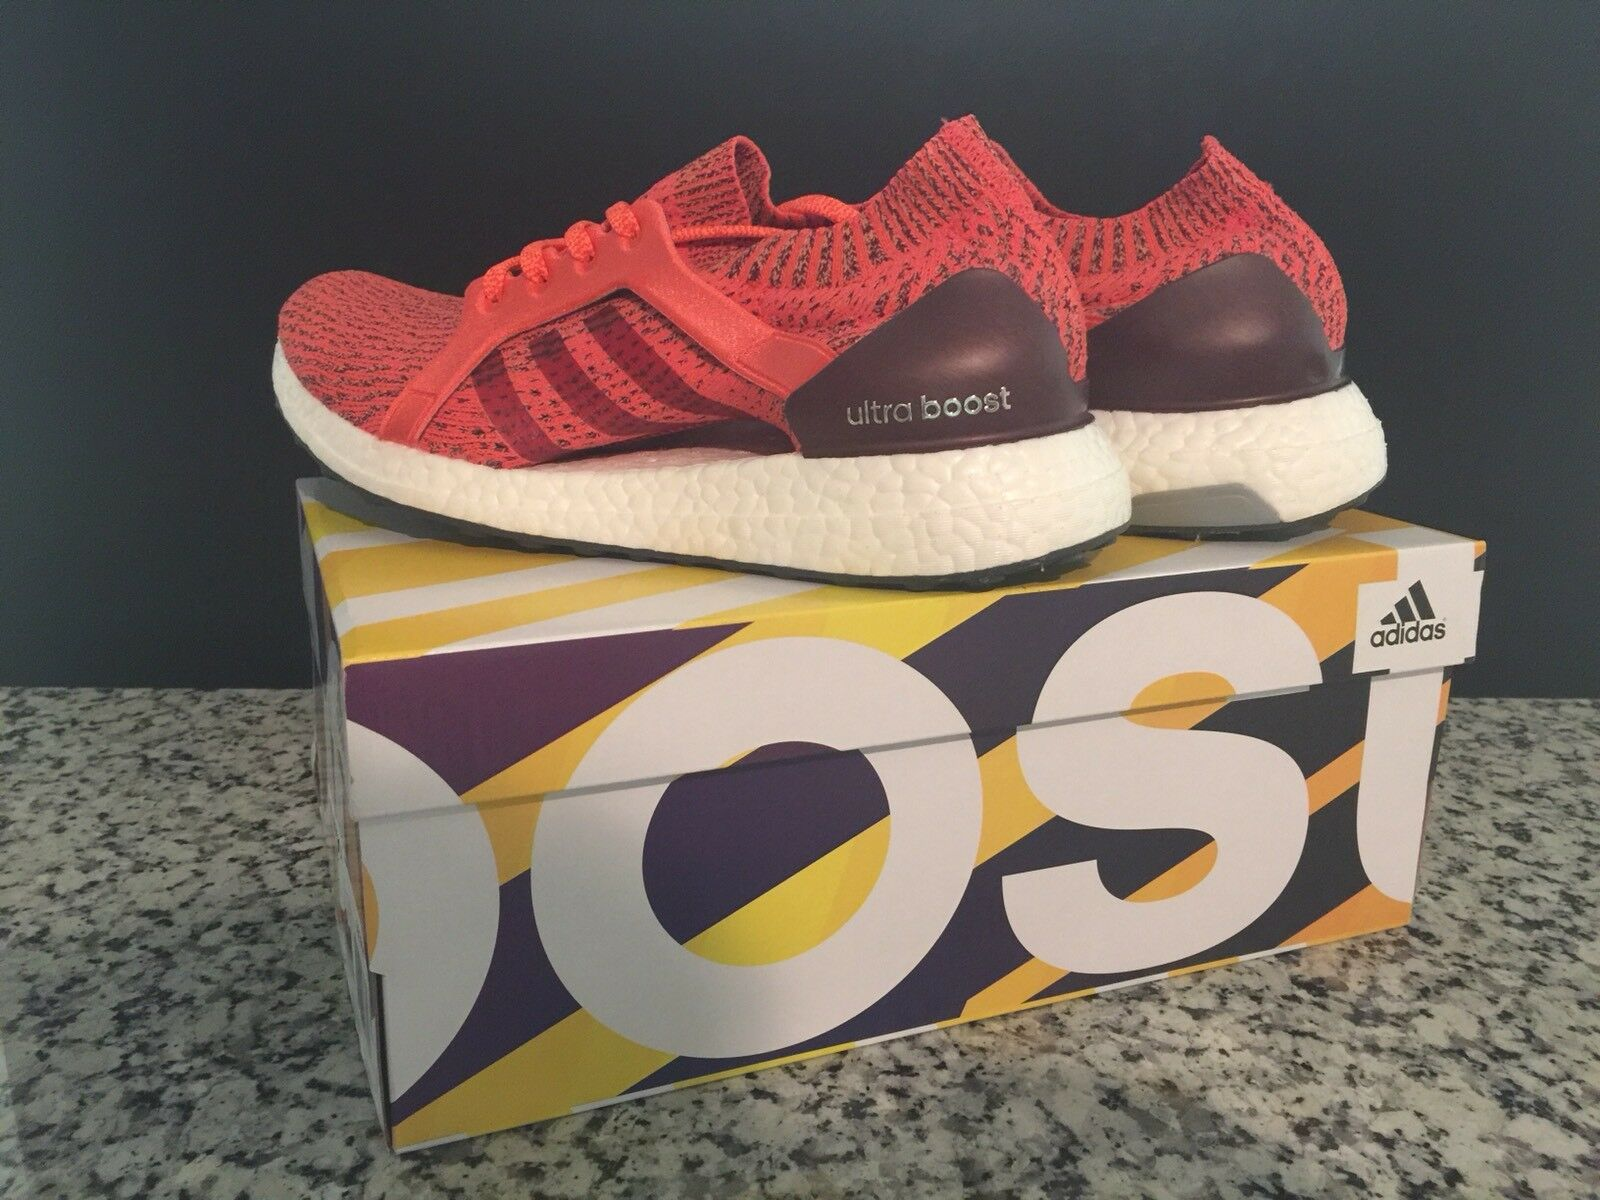 Adidas Originals Women's Ultra Boost X in in in Pink Tactile Red BB1694 Size 5.5 9cd1c7